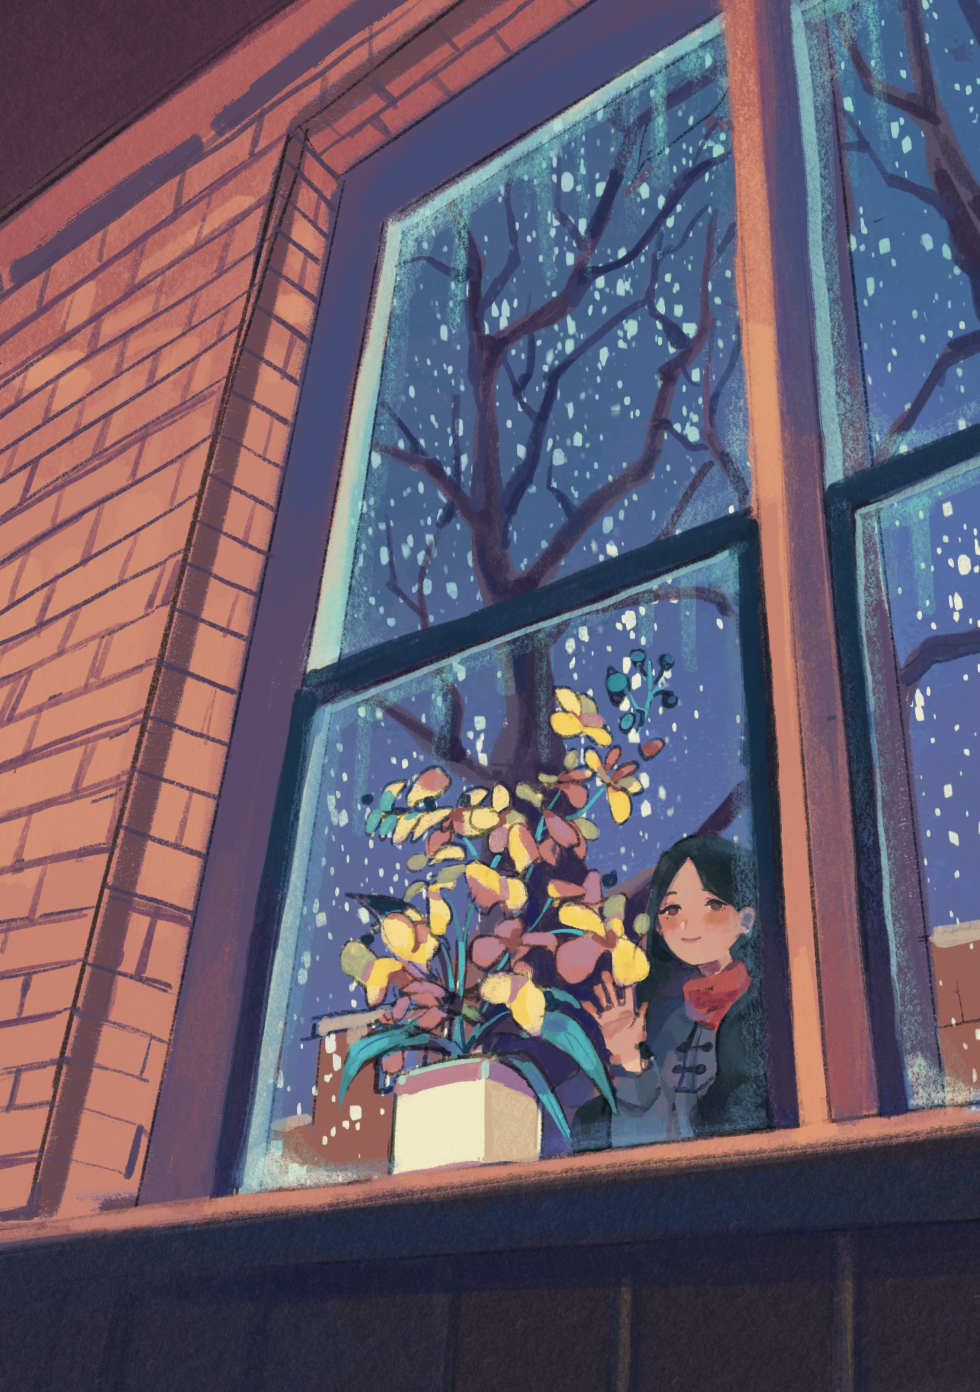 Digital Illustration about a girl looking over a window at a plant growing in winter.